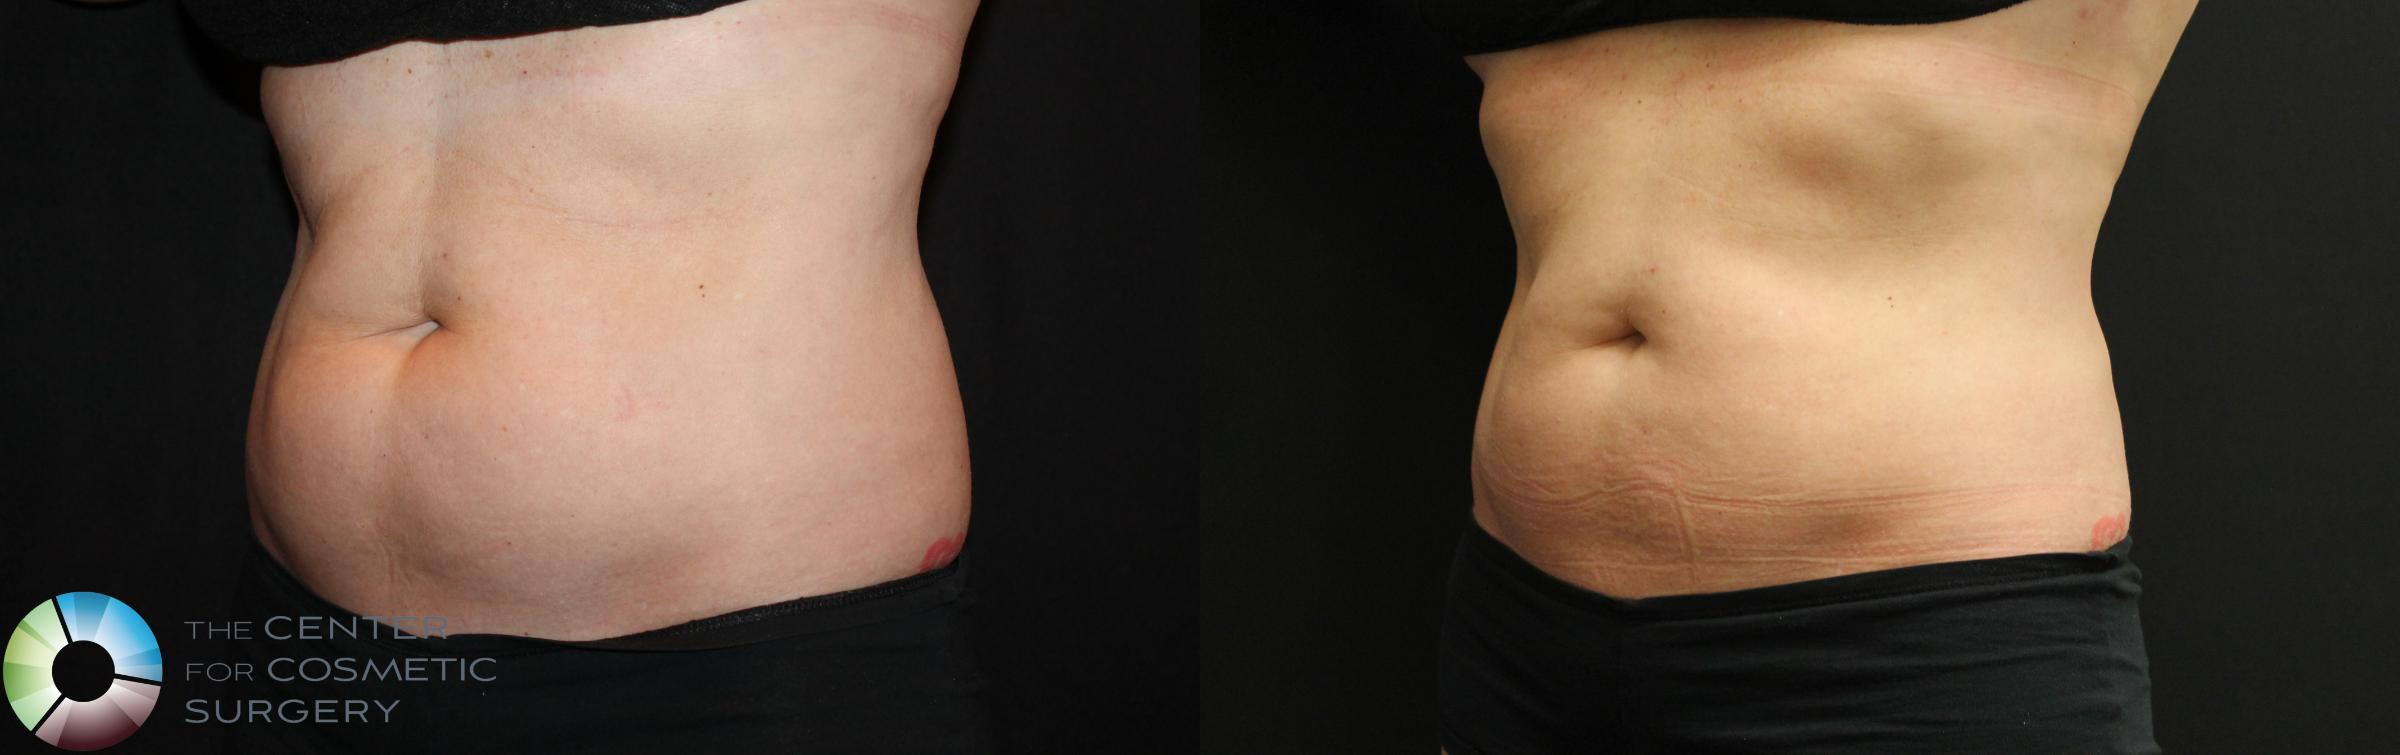 CoolSculpting Case 735 Before & After View #2 | Golden, CO | The Center for Cosmetic Surgery